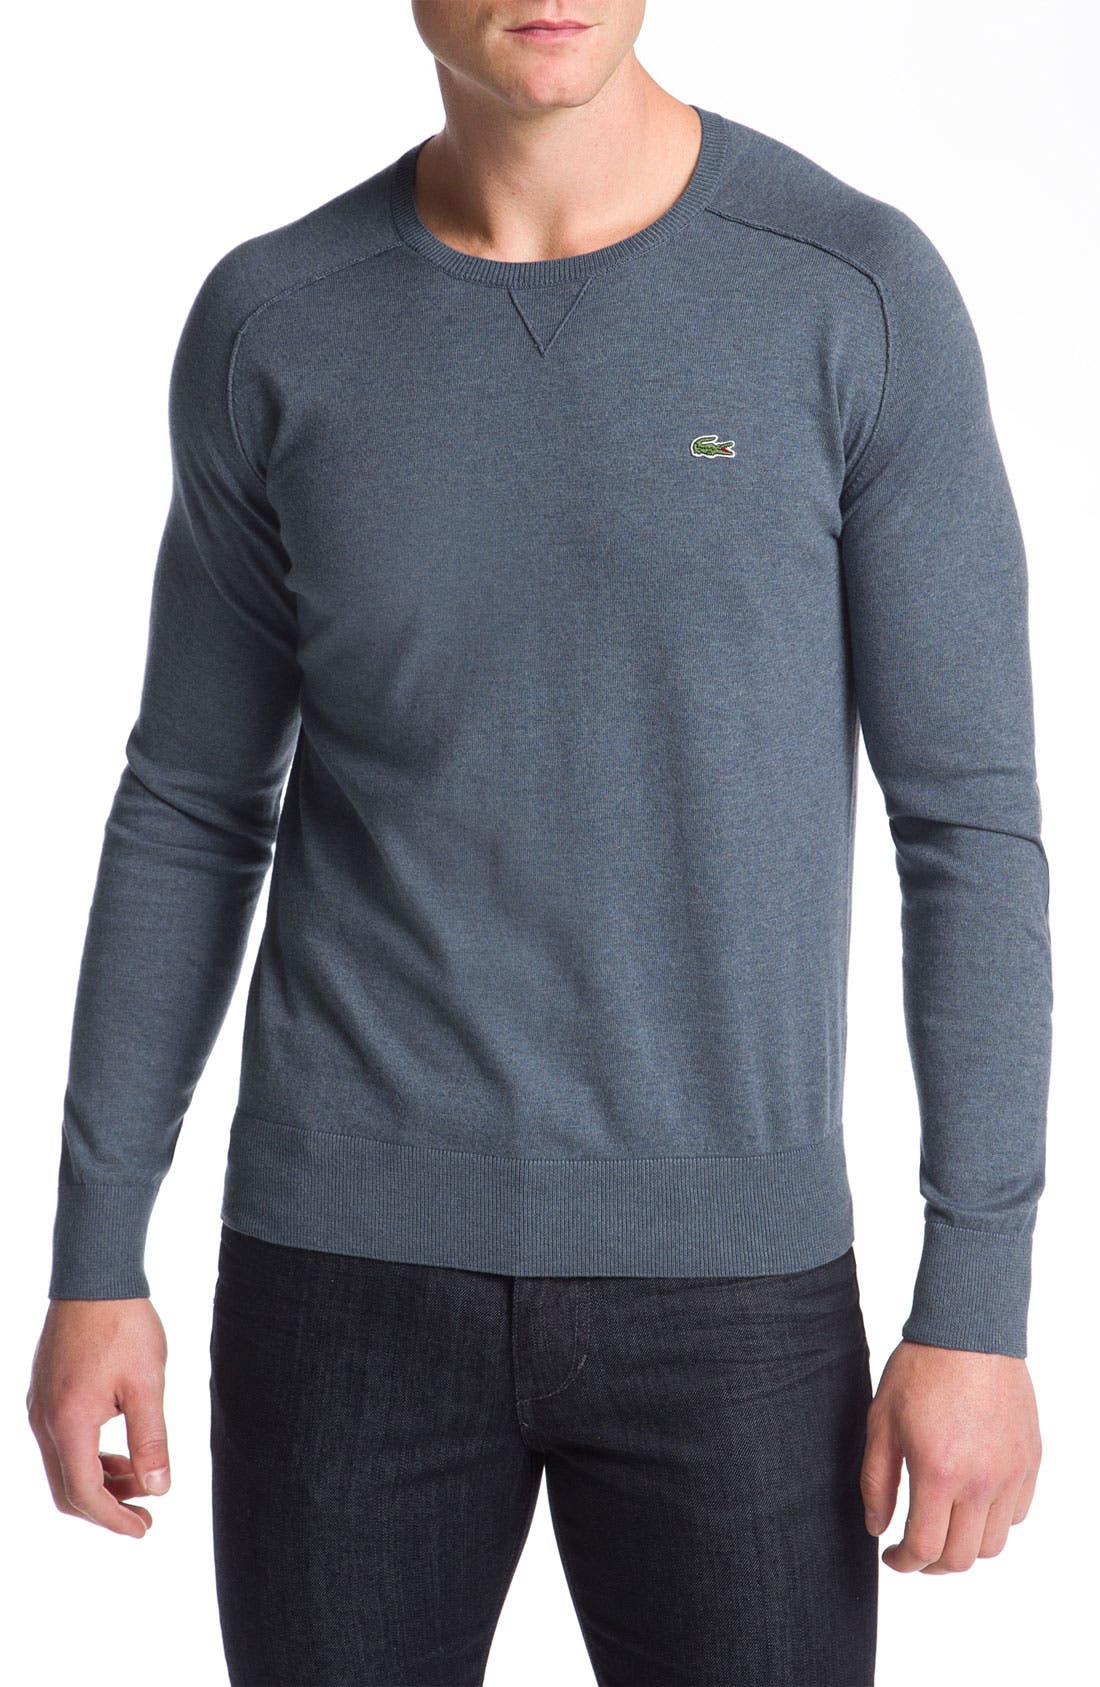 Main Image - Lacoste Cotton & Cashmere Crewneck Sweater